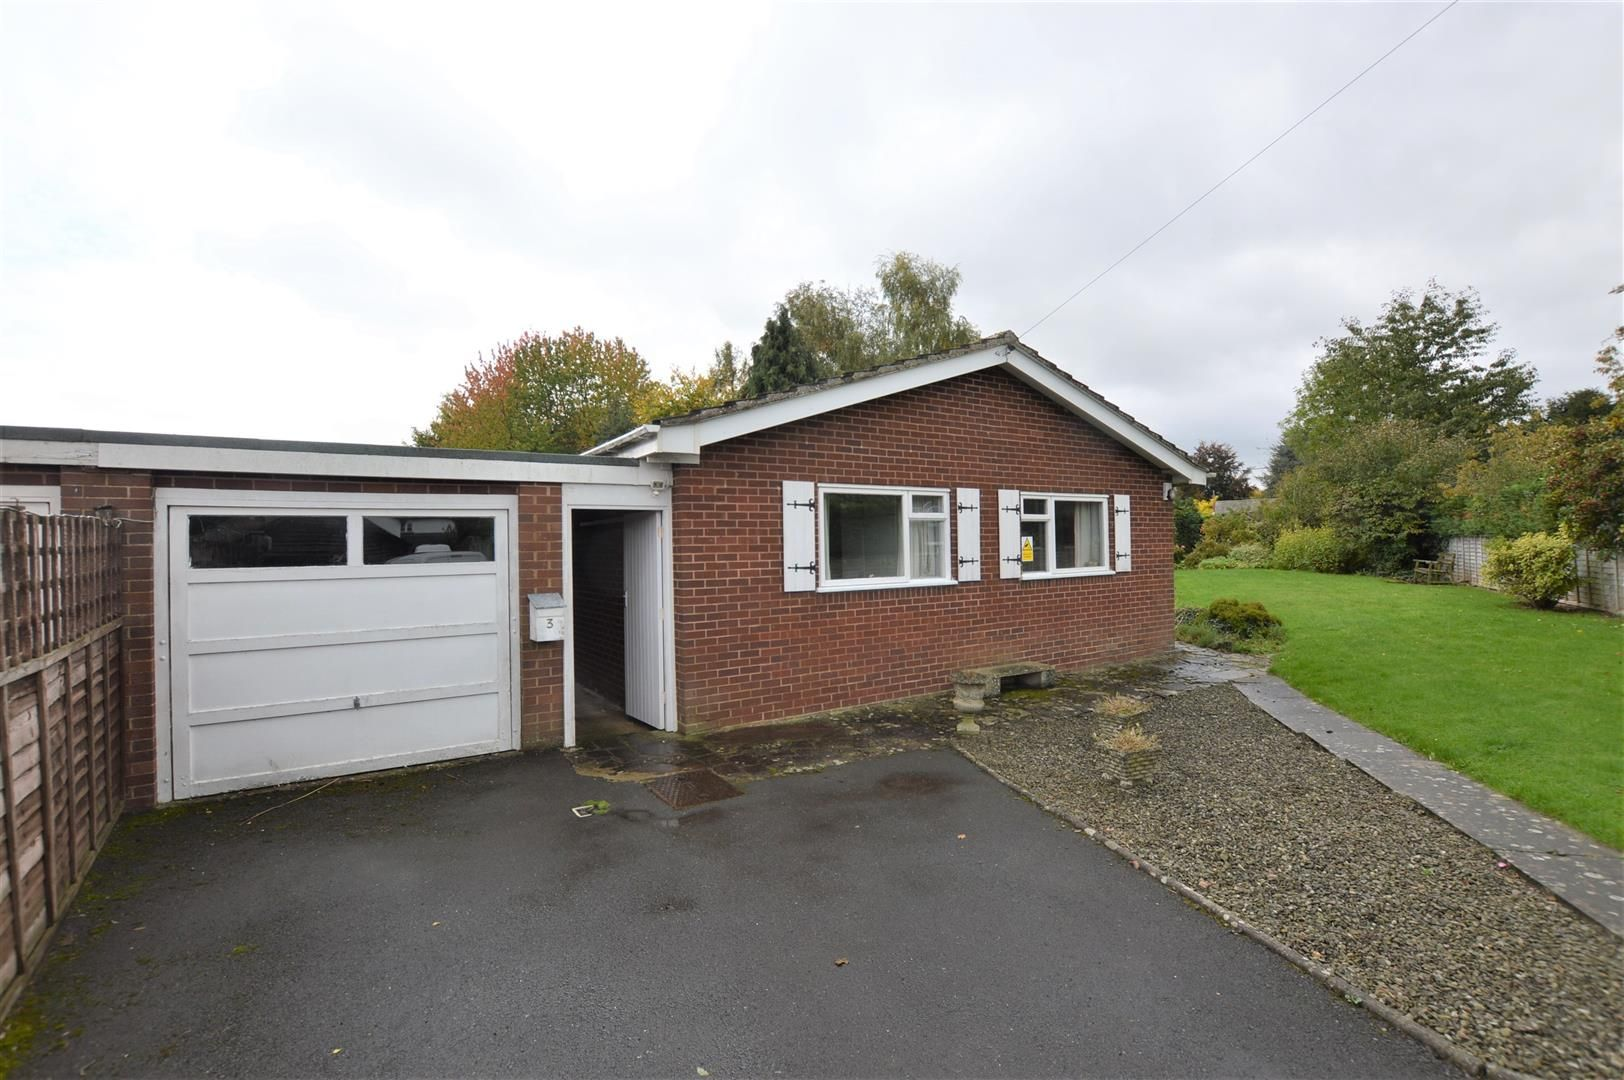 3 bed detached-bungalow for sale in Dilwyn, HR4